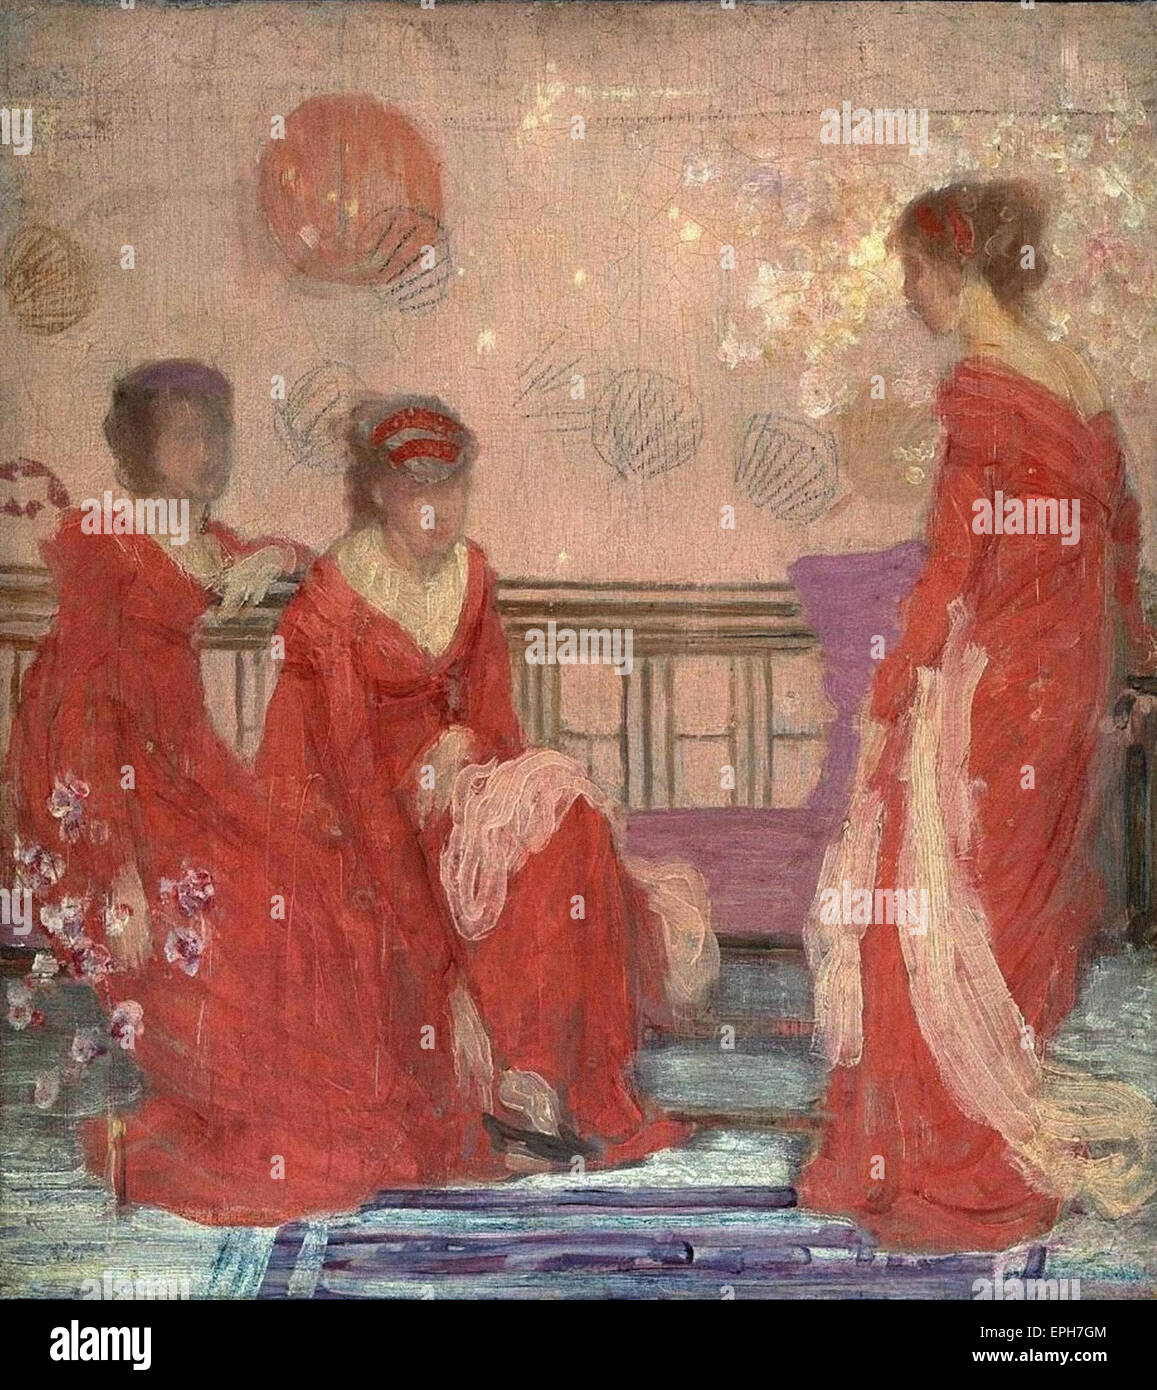 James Abbott McNeill Whistler  Harmony in Flesh Colour and Red - Stock Image